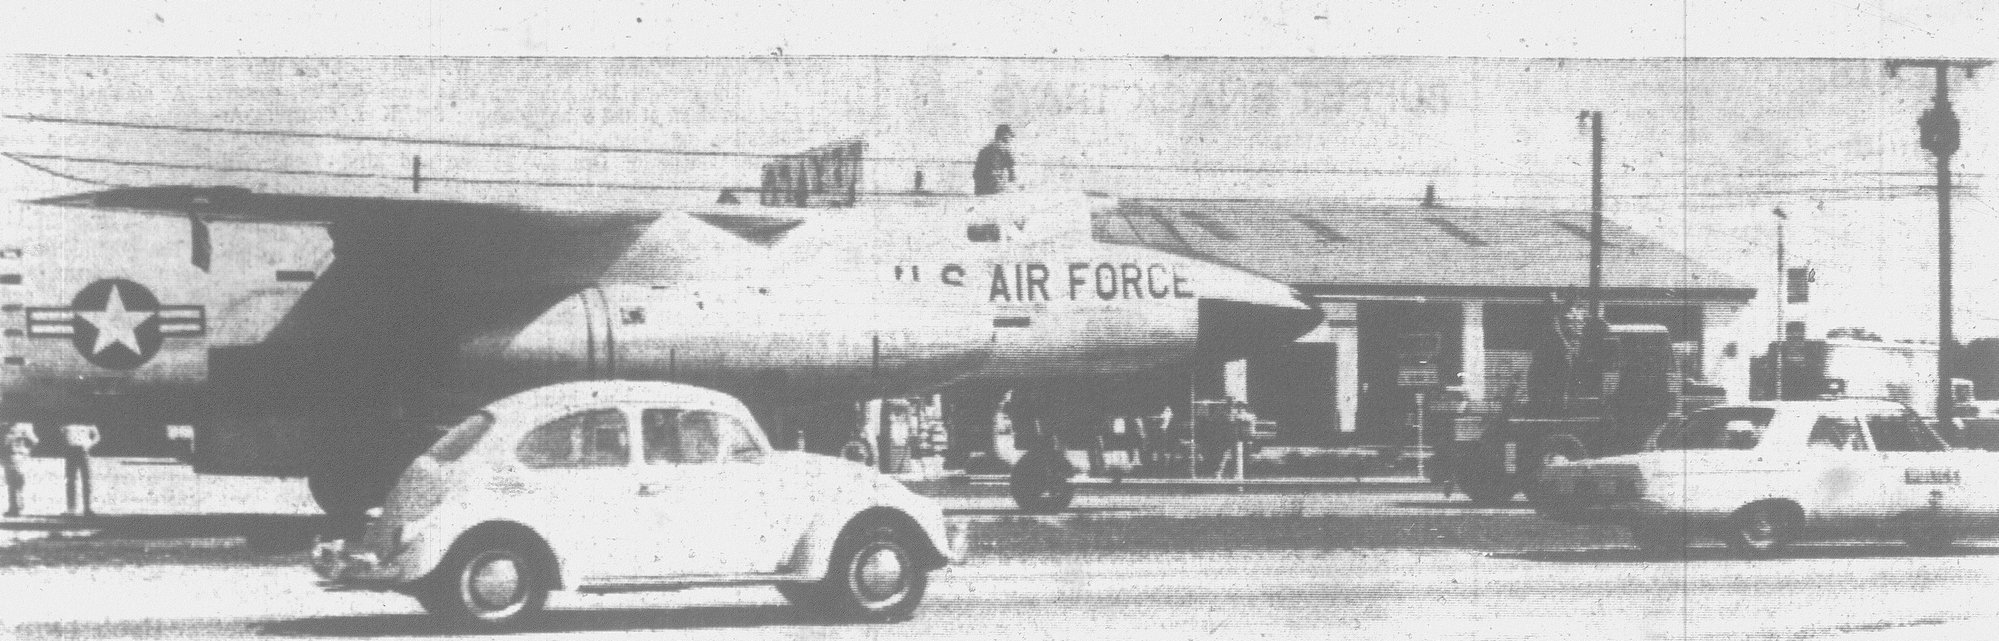 In 1965, the Air Force gave the City of Sumter a decommissioned RB-66 as a memorial. The plane is seen being towed down U.S. Hwy. 76 toward Sumter.